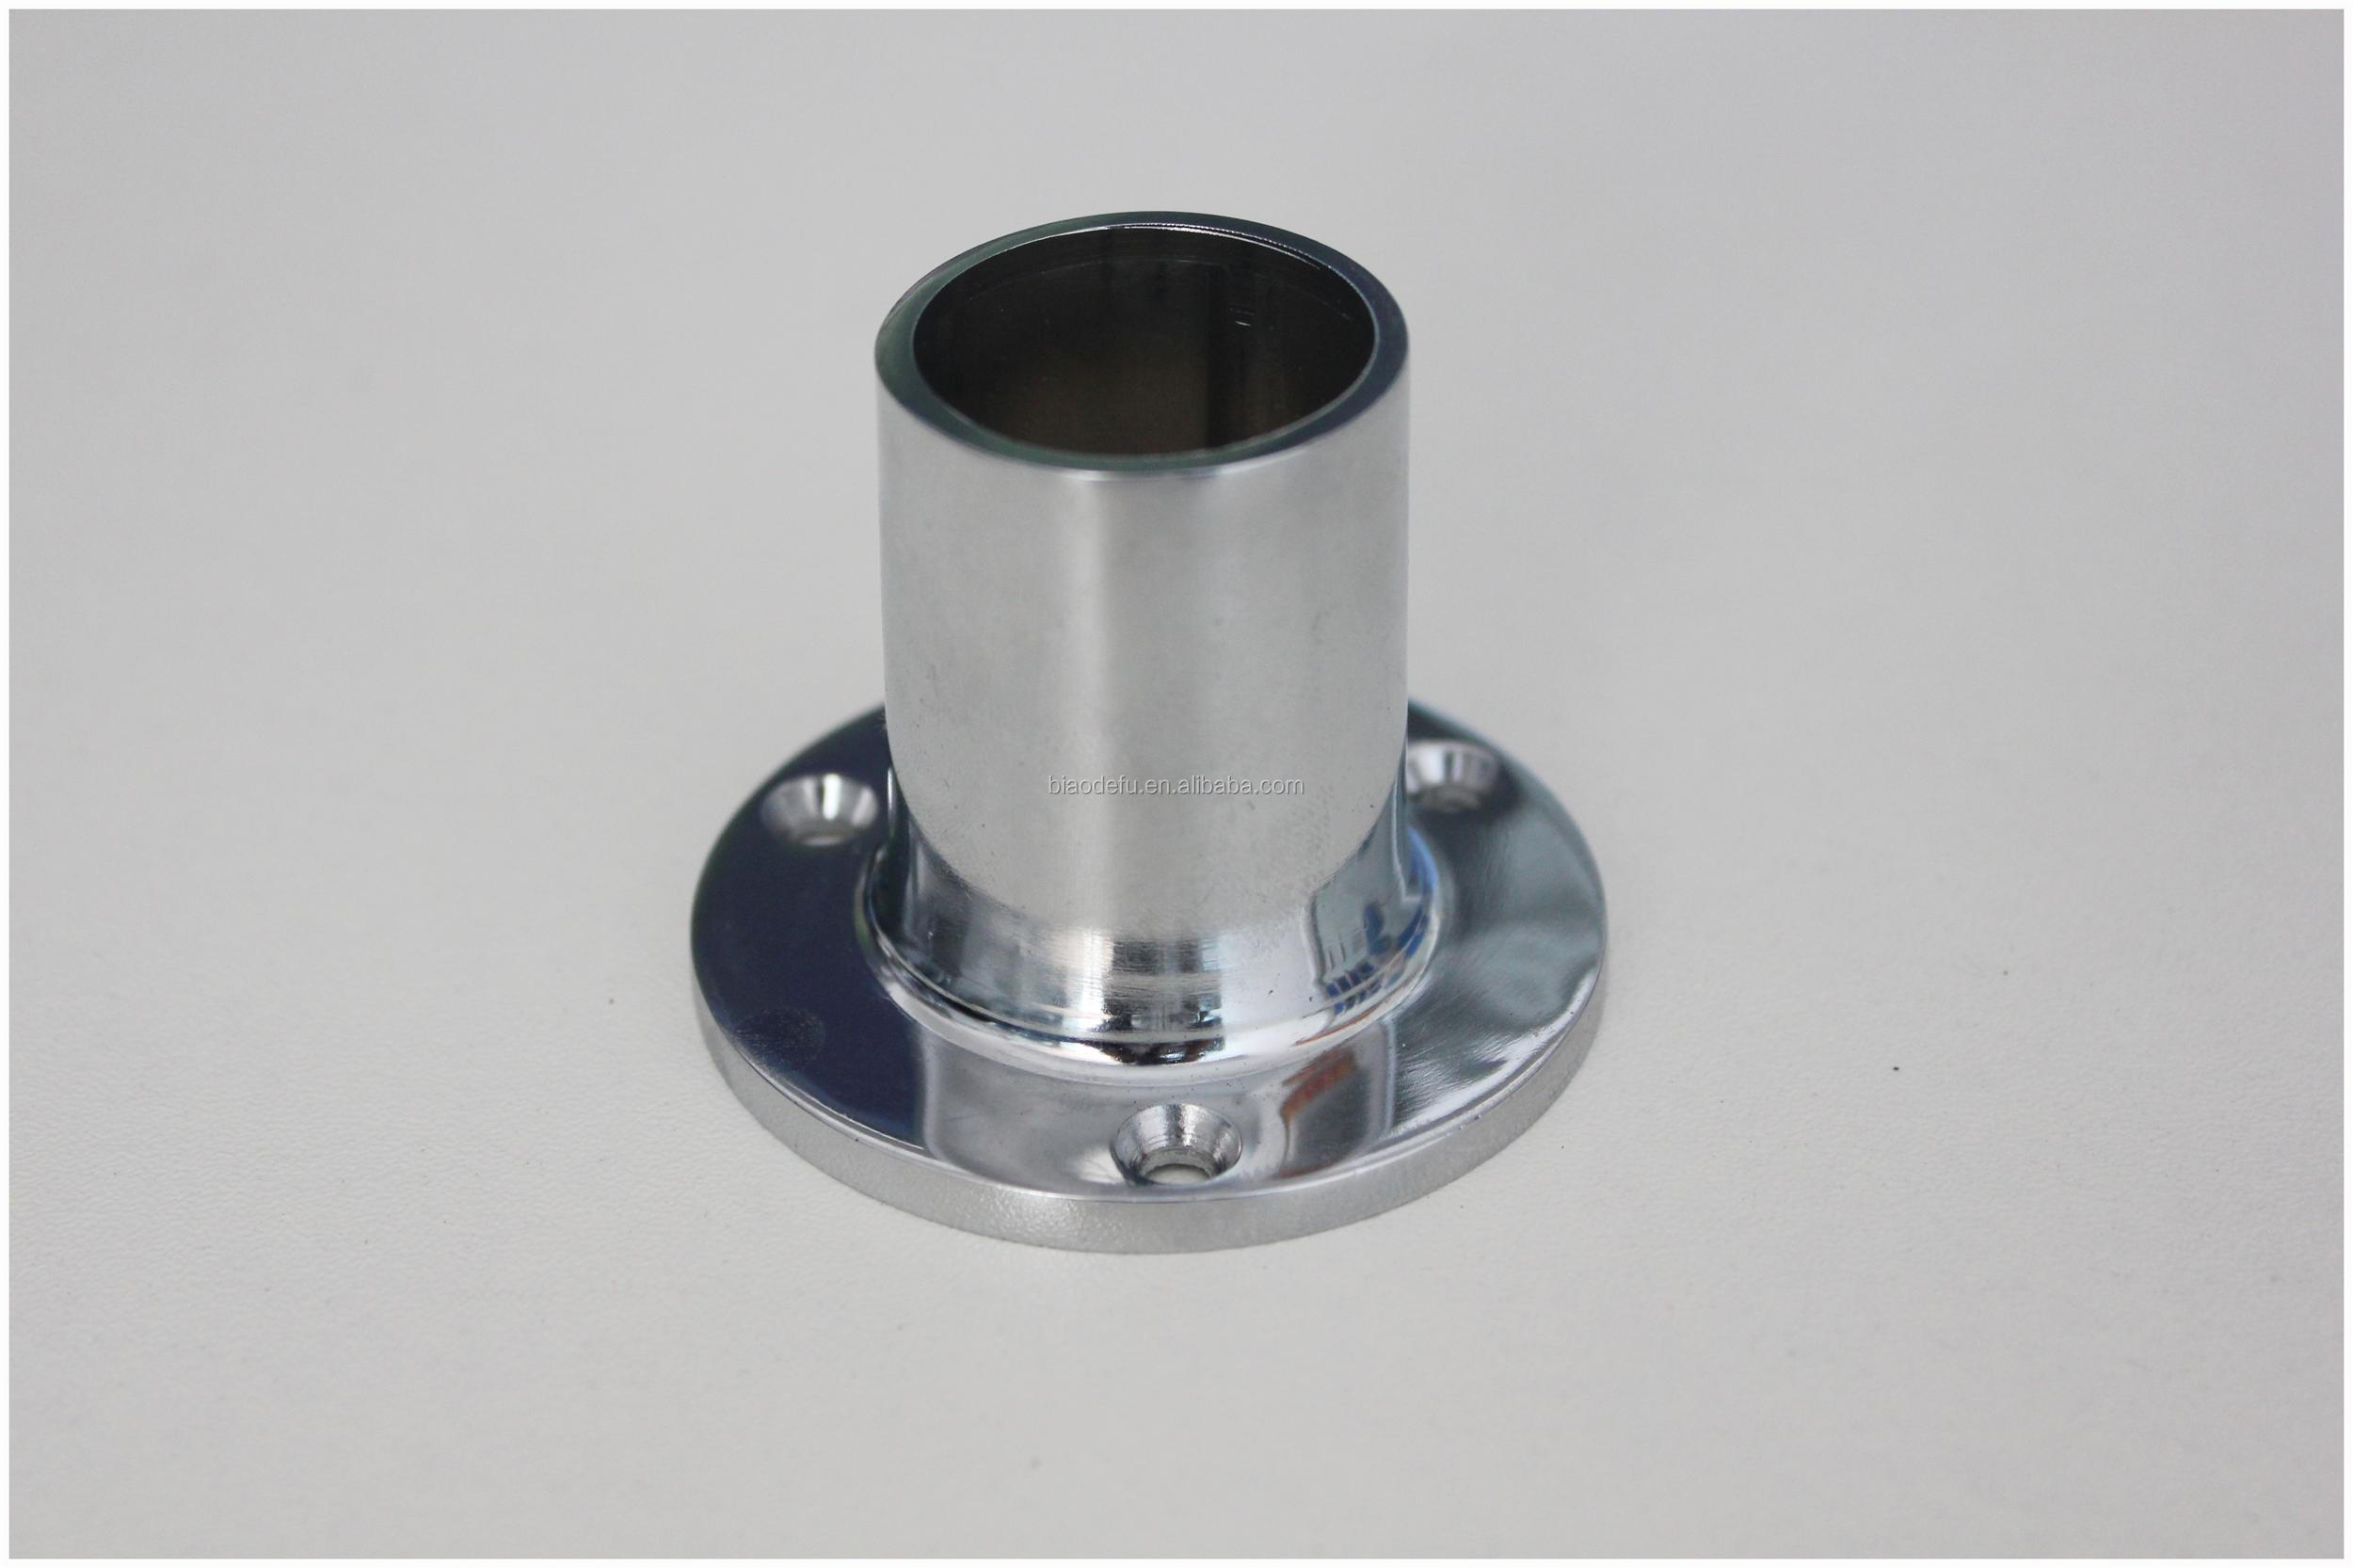 19mm 22mm 25mm Round Pipe Fitting Flange Post Base View